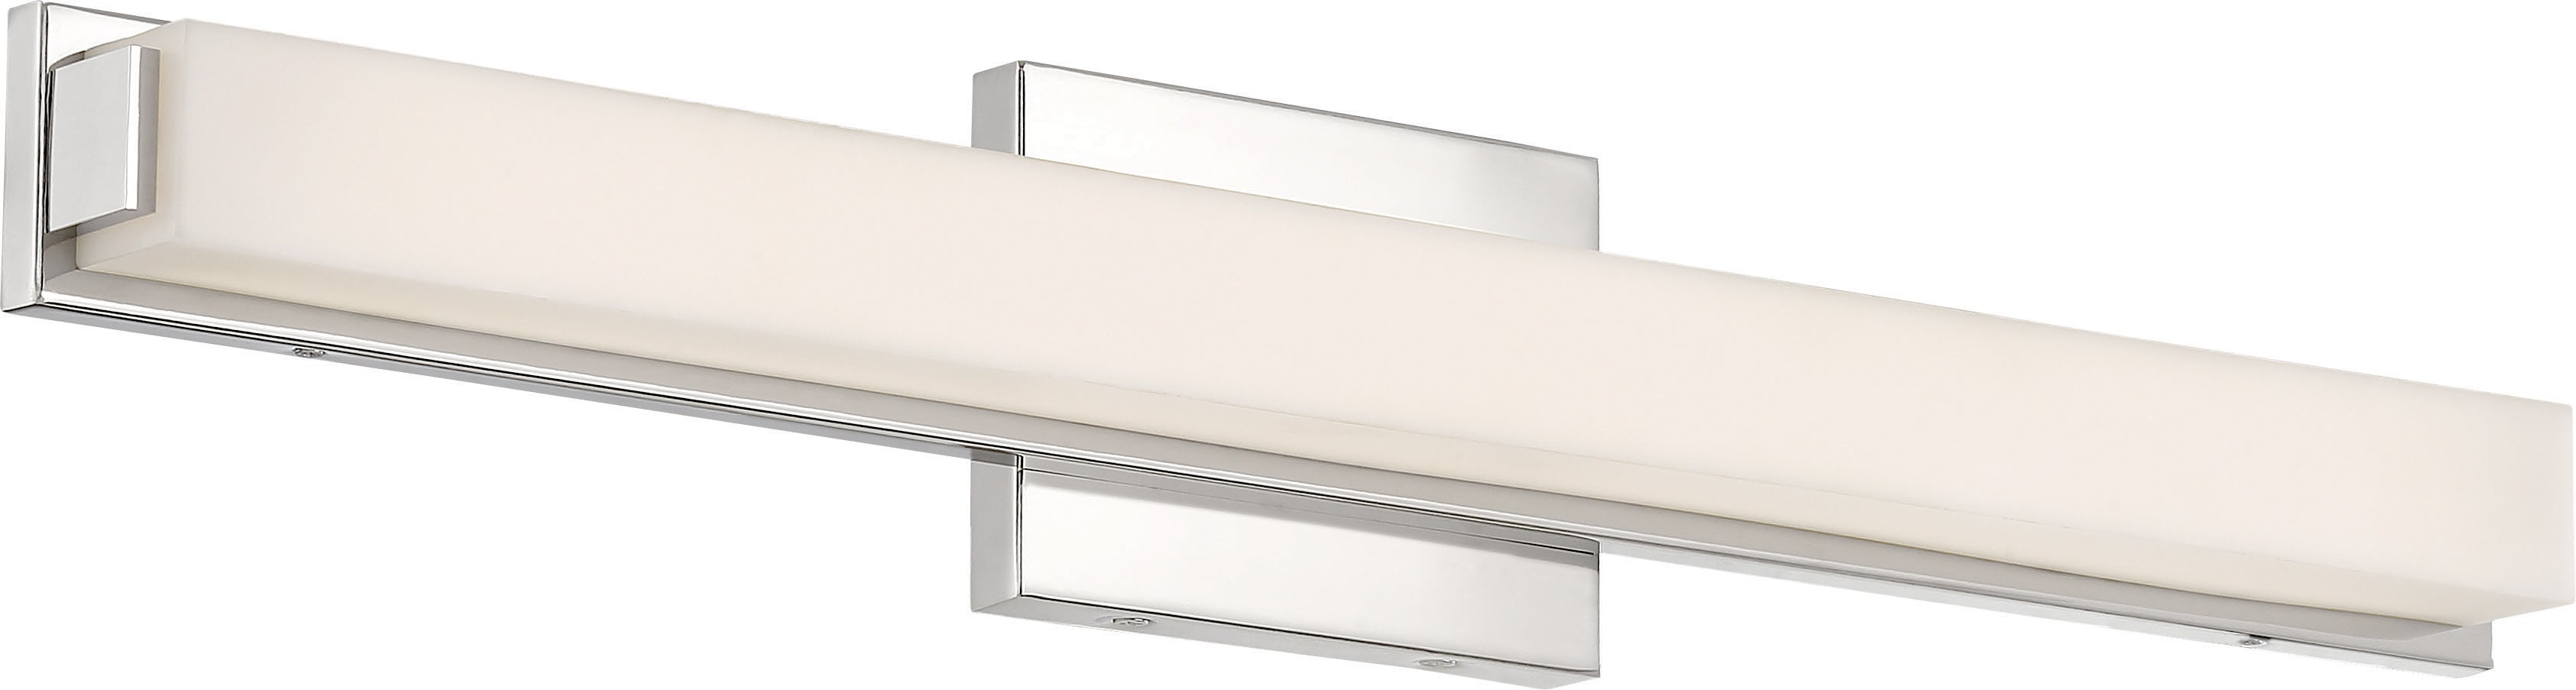 """Nuvo Slick 1-Light 25"""" LED Vanity w/ White Acrylic Diffuser in Polished Nickel"""